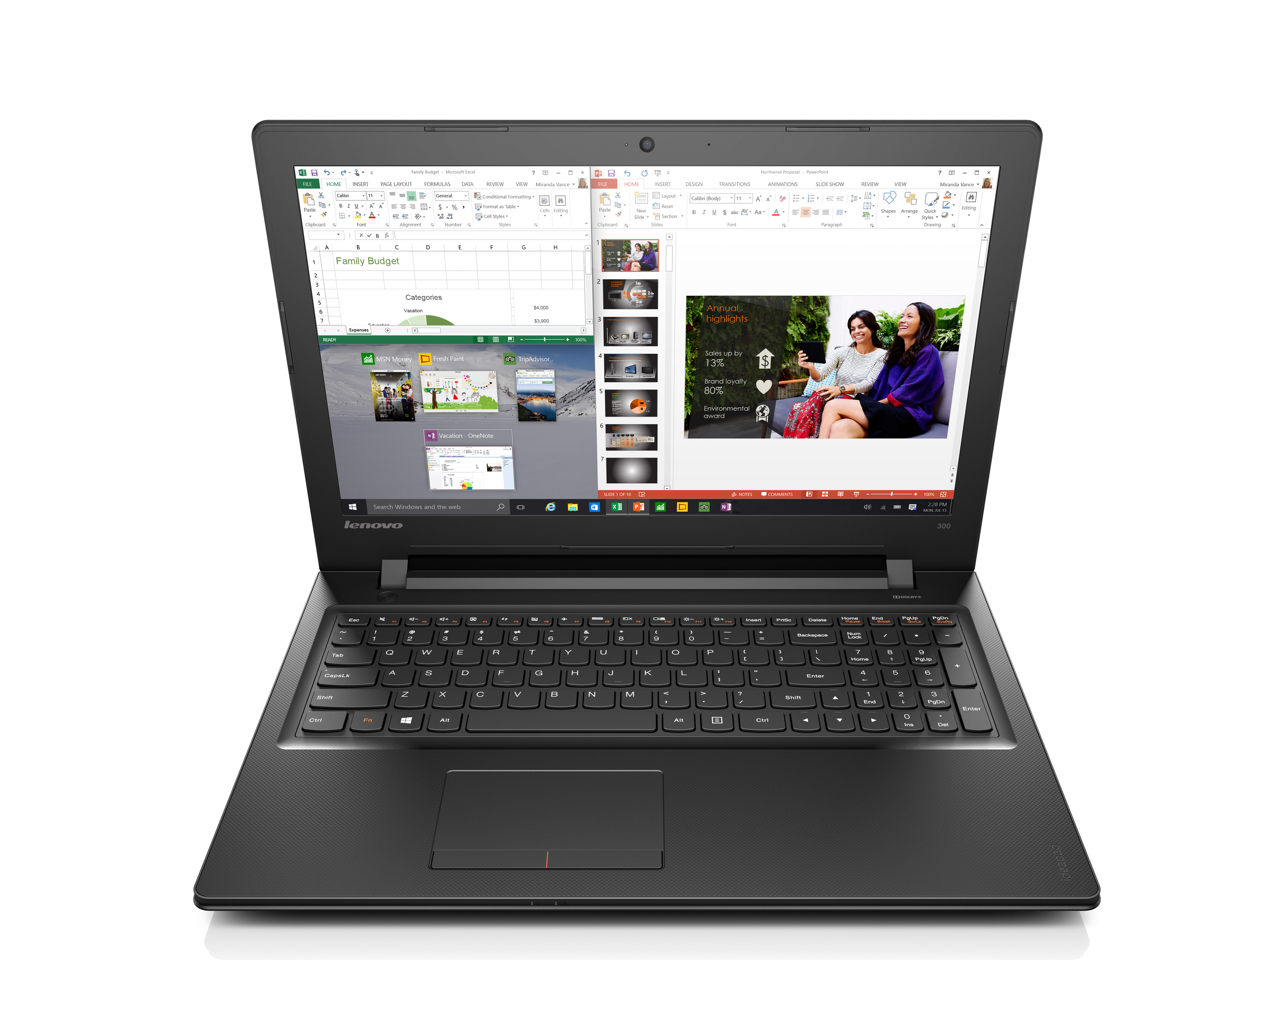 Lenovo IdeaPad 110 Realtek Camera Treiber Windows 7